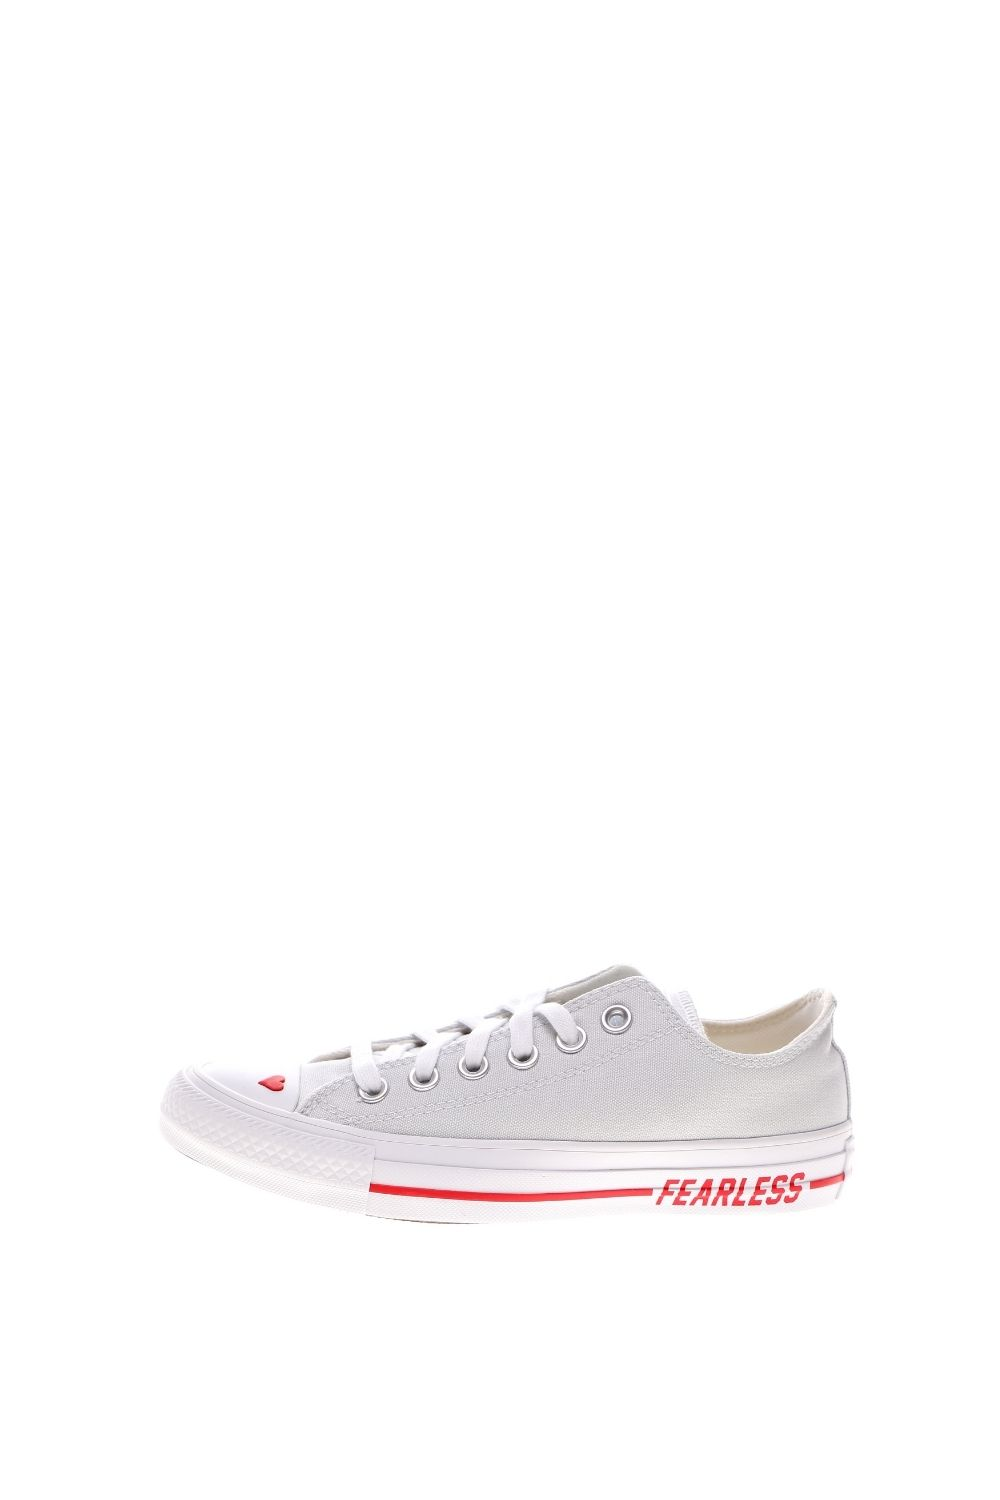 CONVERSE – Γυναικεία sneakers CONVERSE CHUCK TAYLOR ALL STAR LOVE CAN γκρι